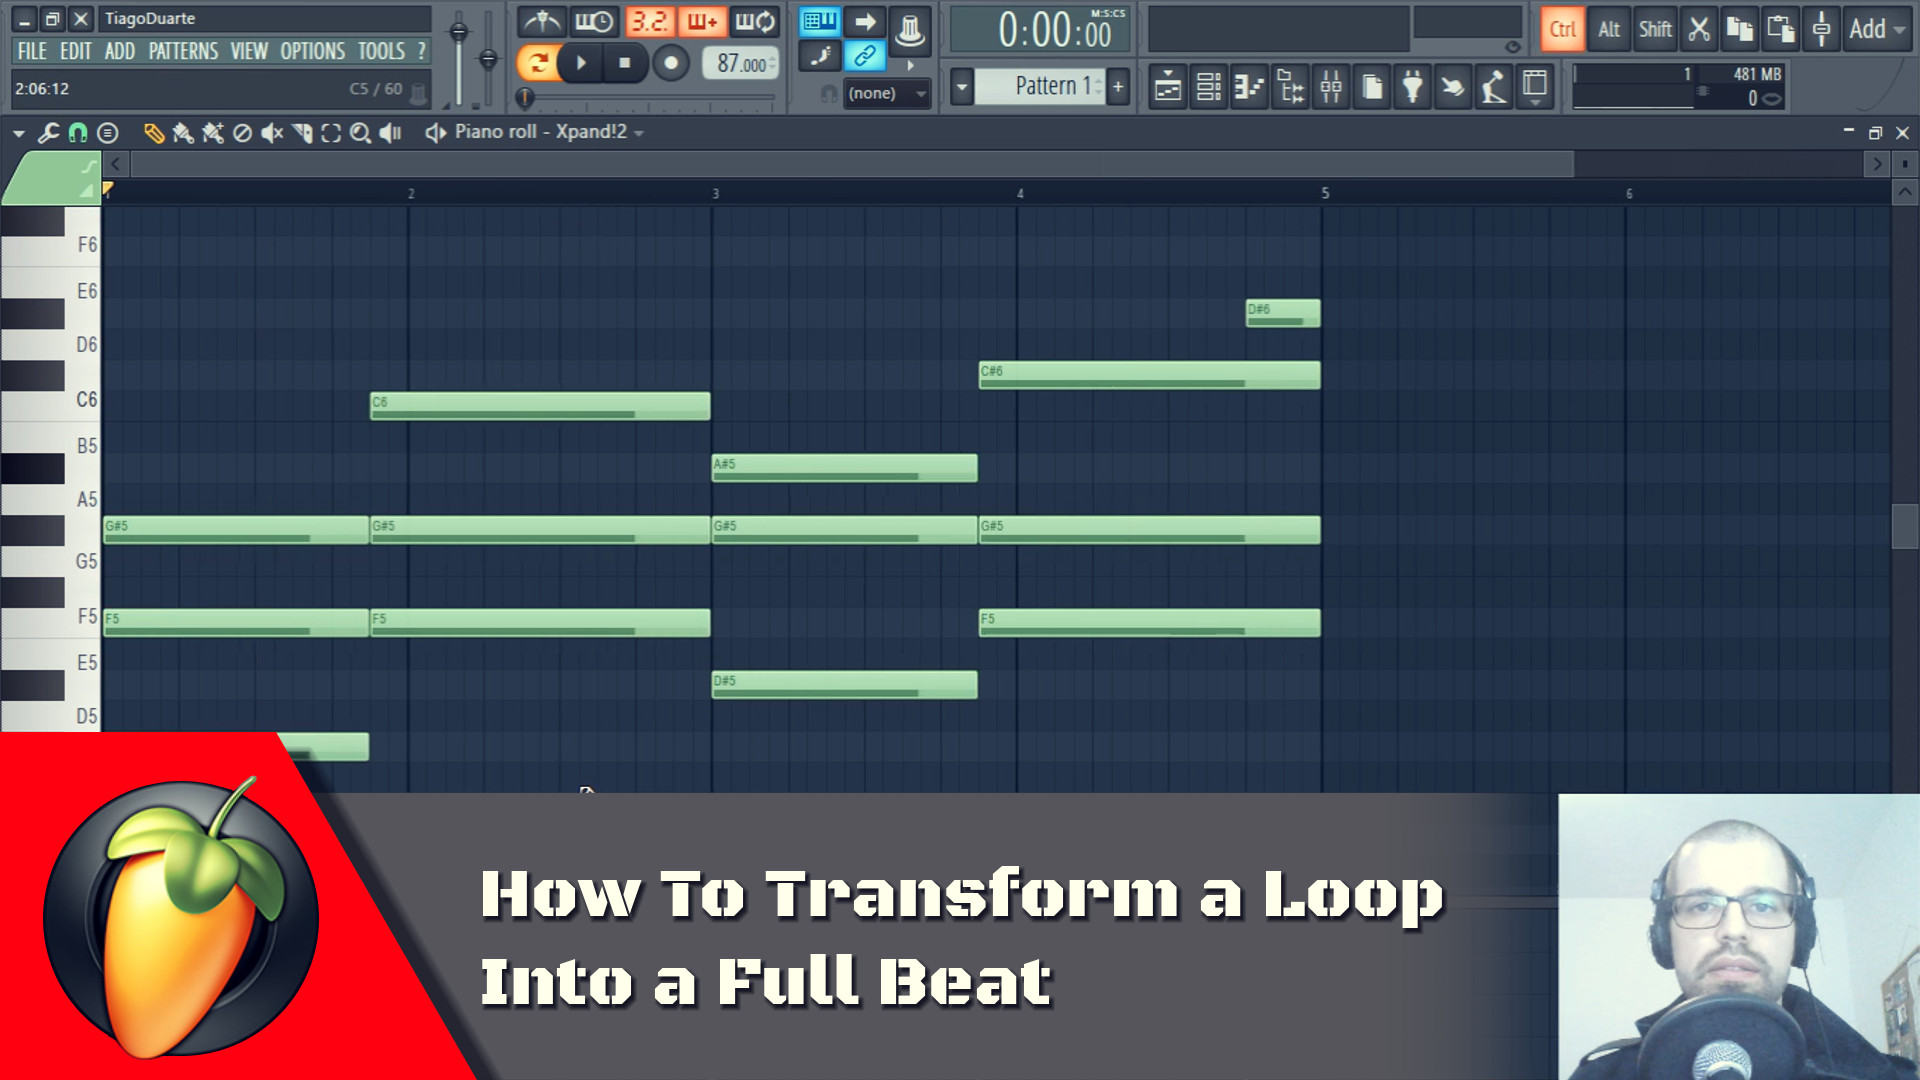 How to Transform a Loop Into a Full Beat